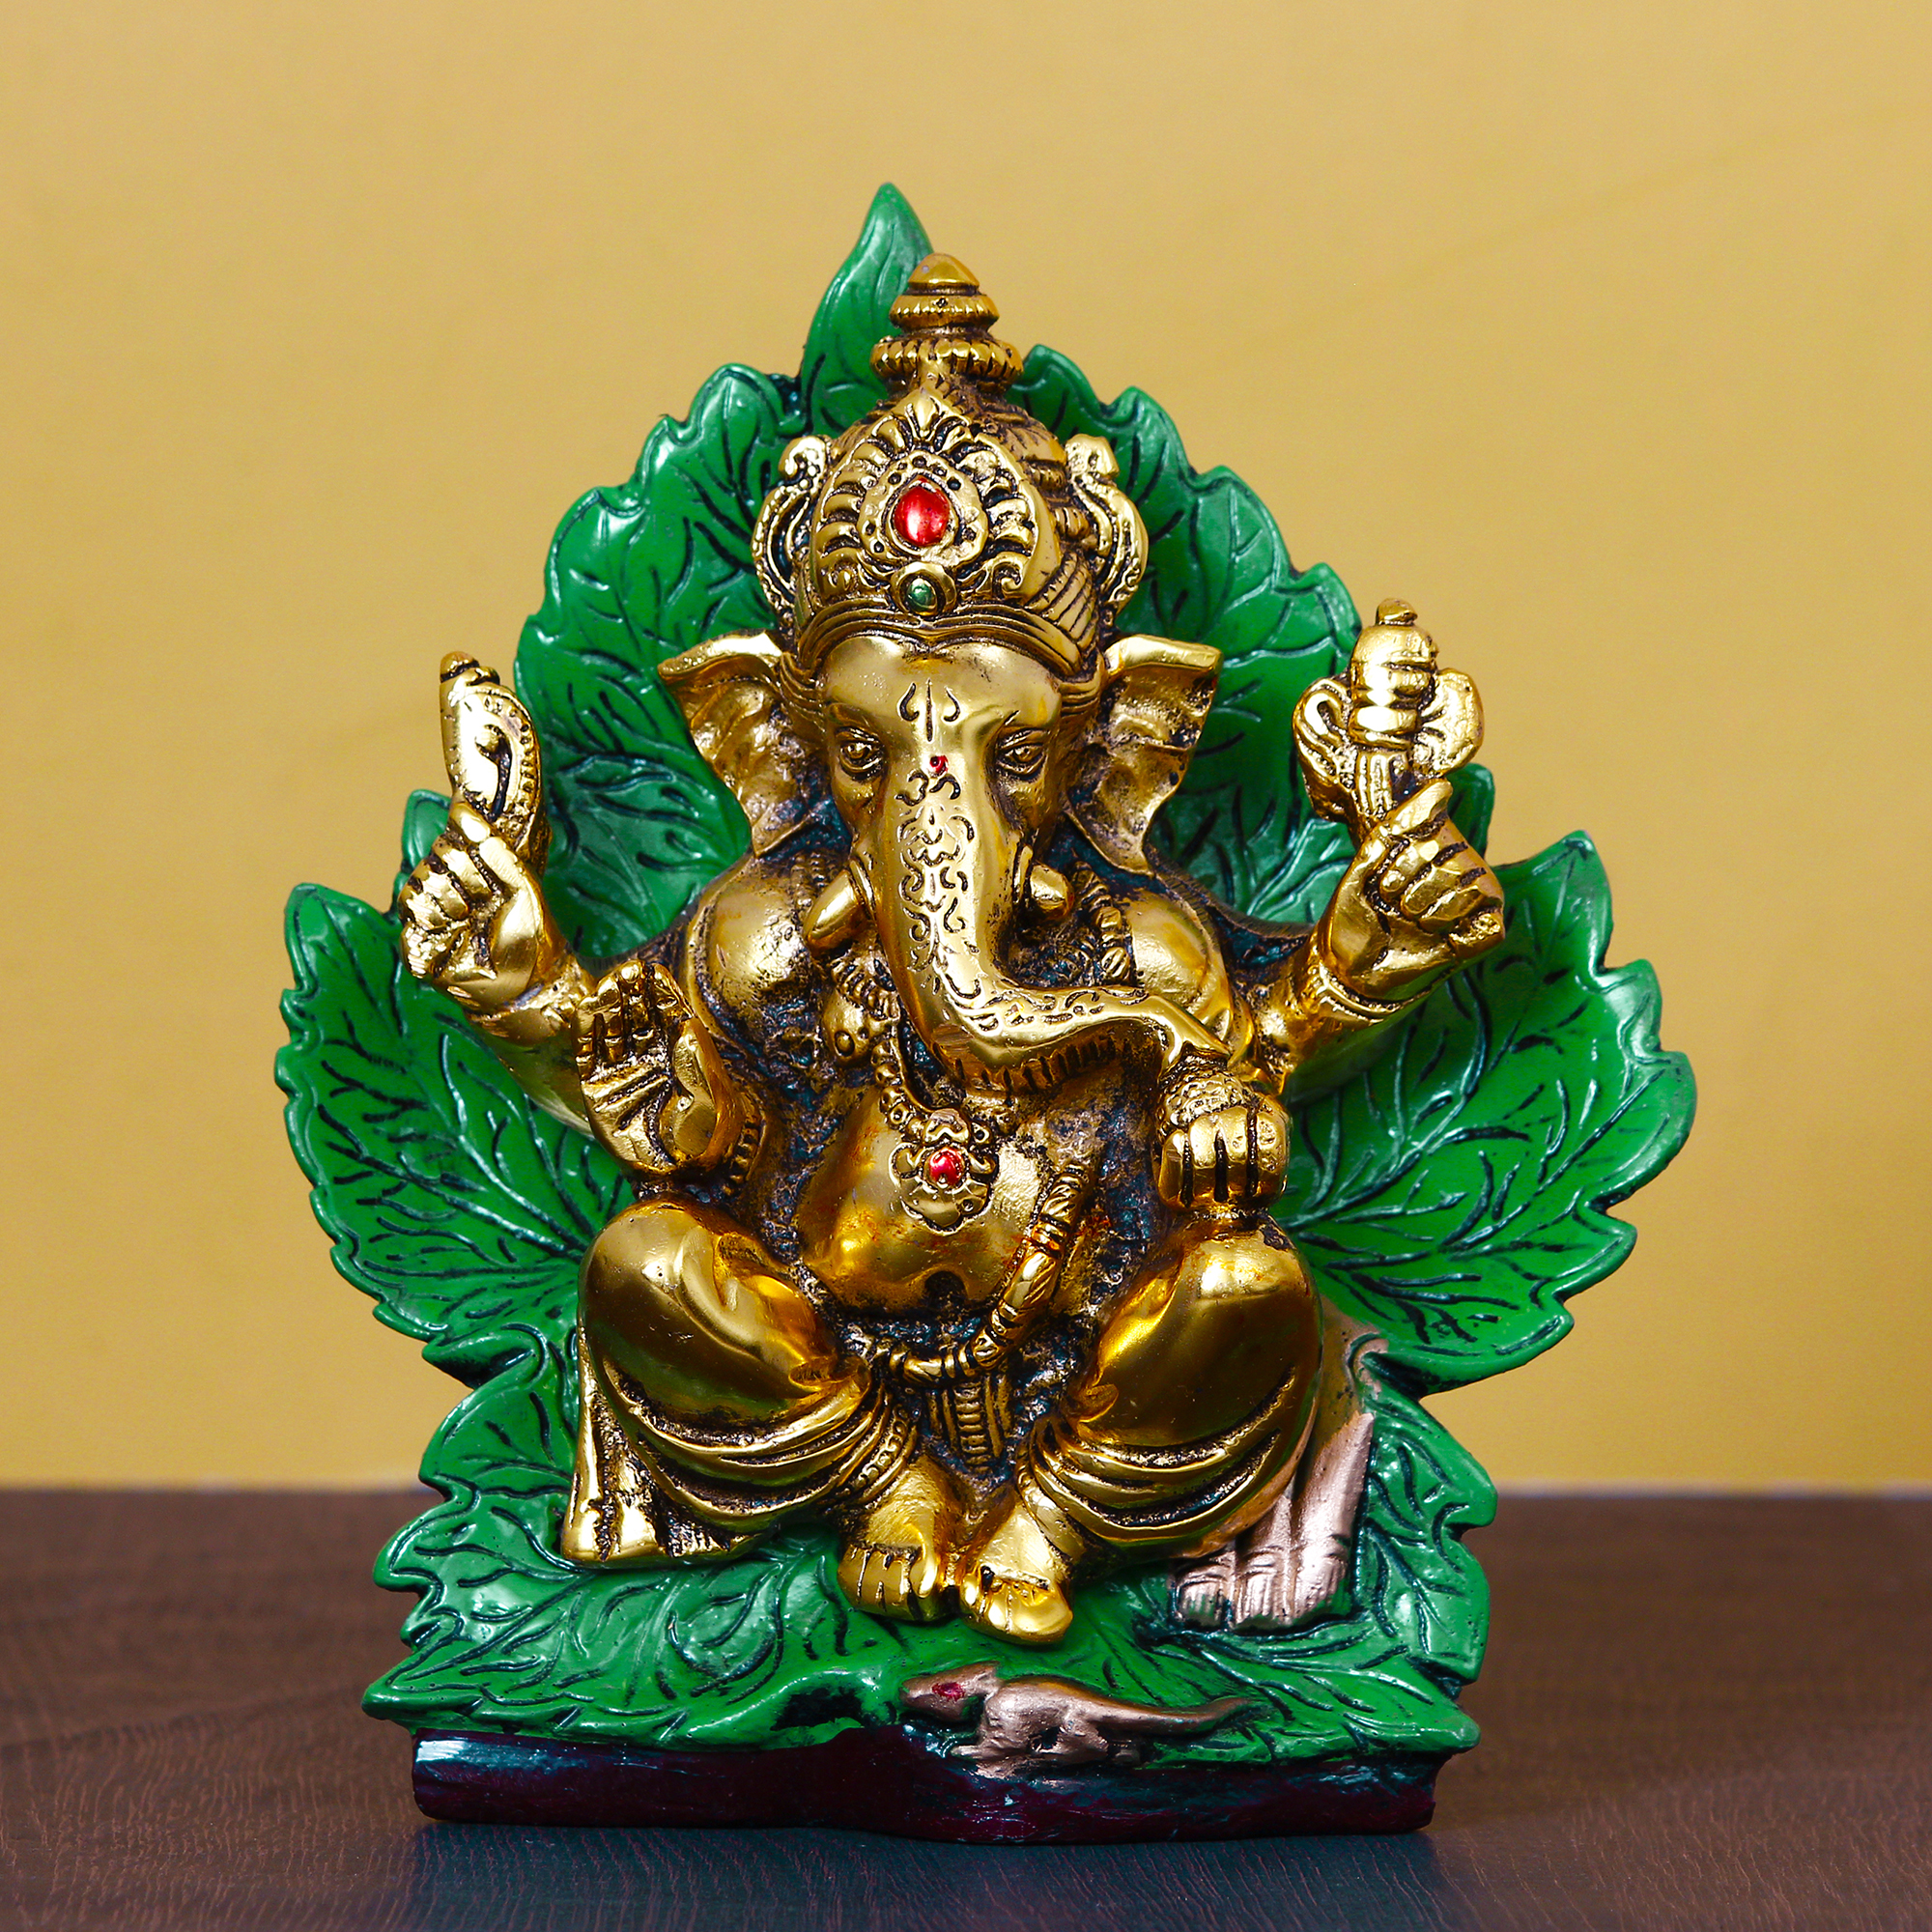 Golden Sitting Lord Ganesha on Green Throne Metal Decorative Showpiece Indian Home Decor